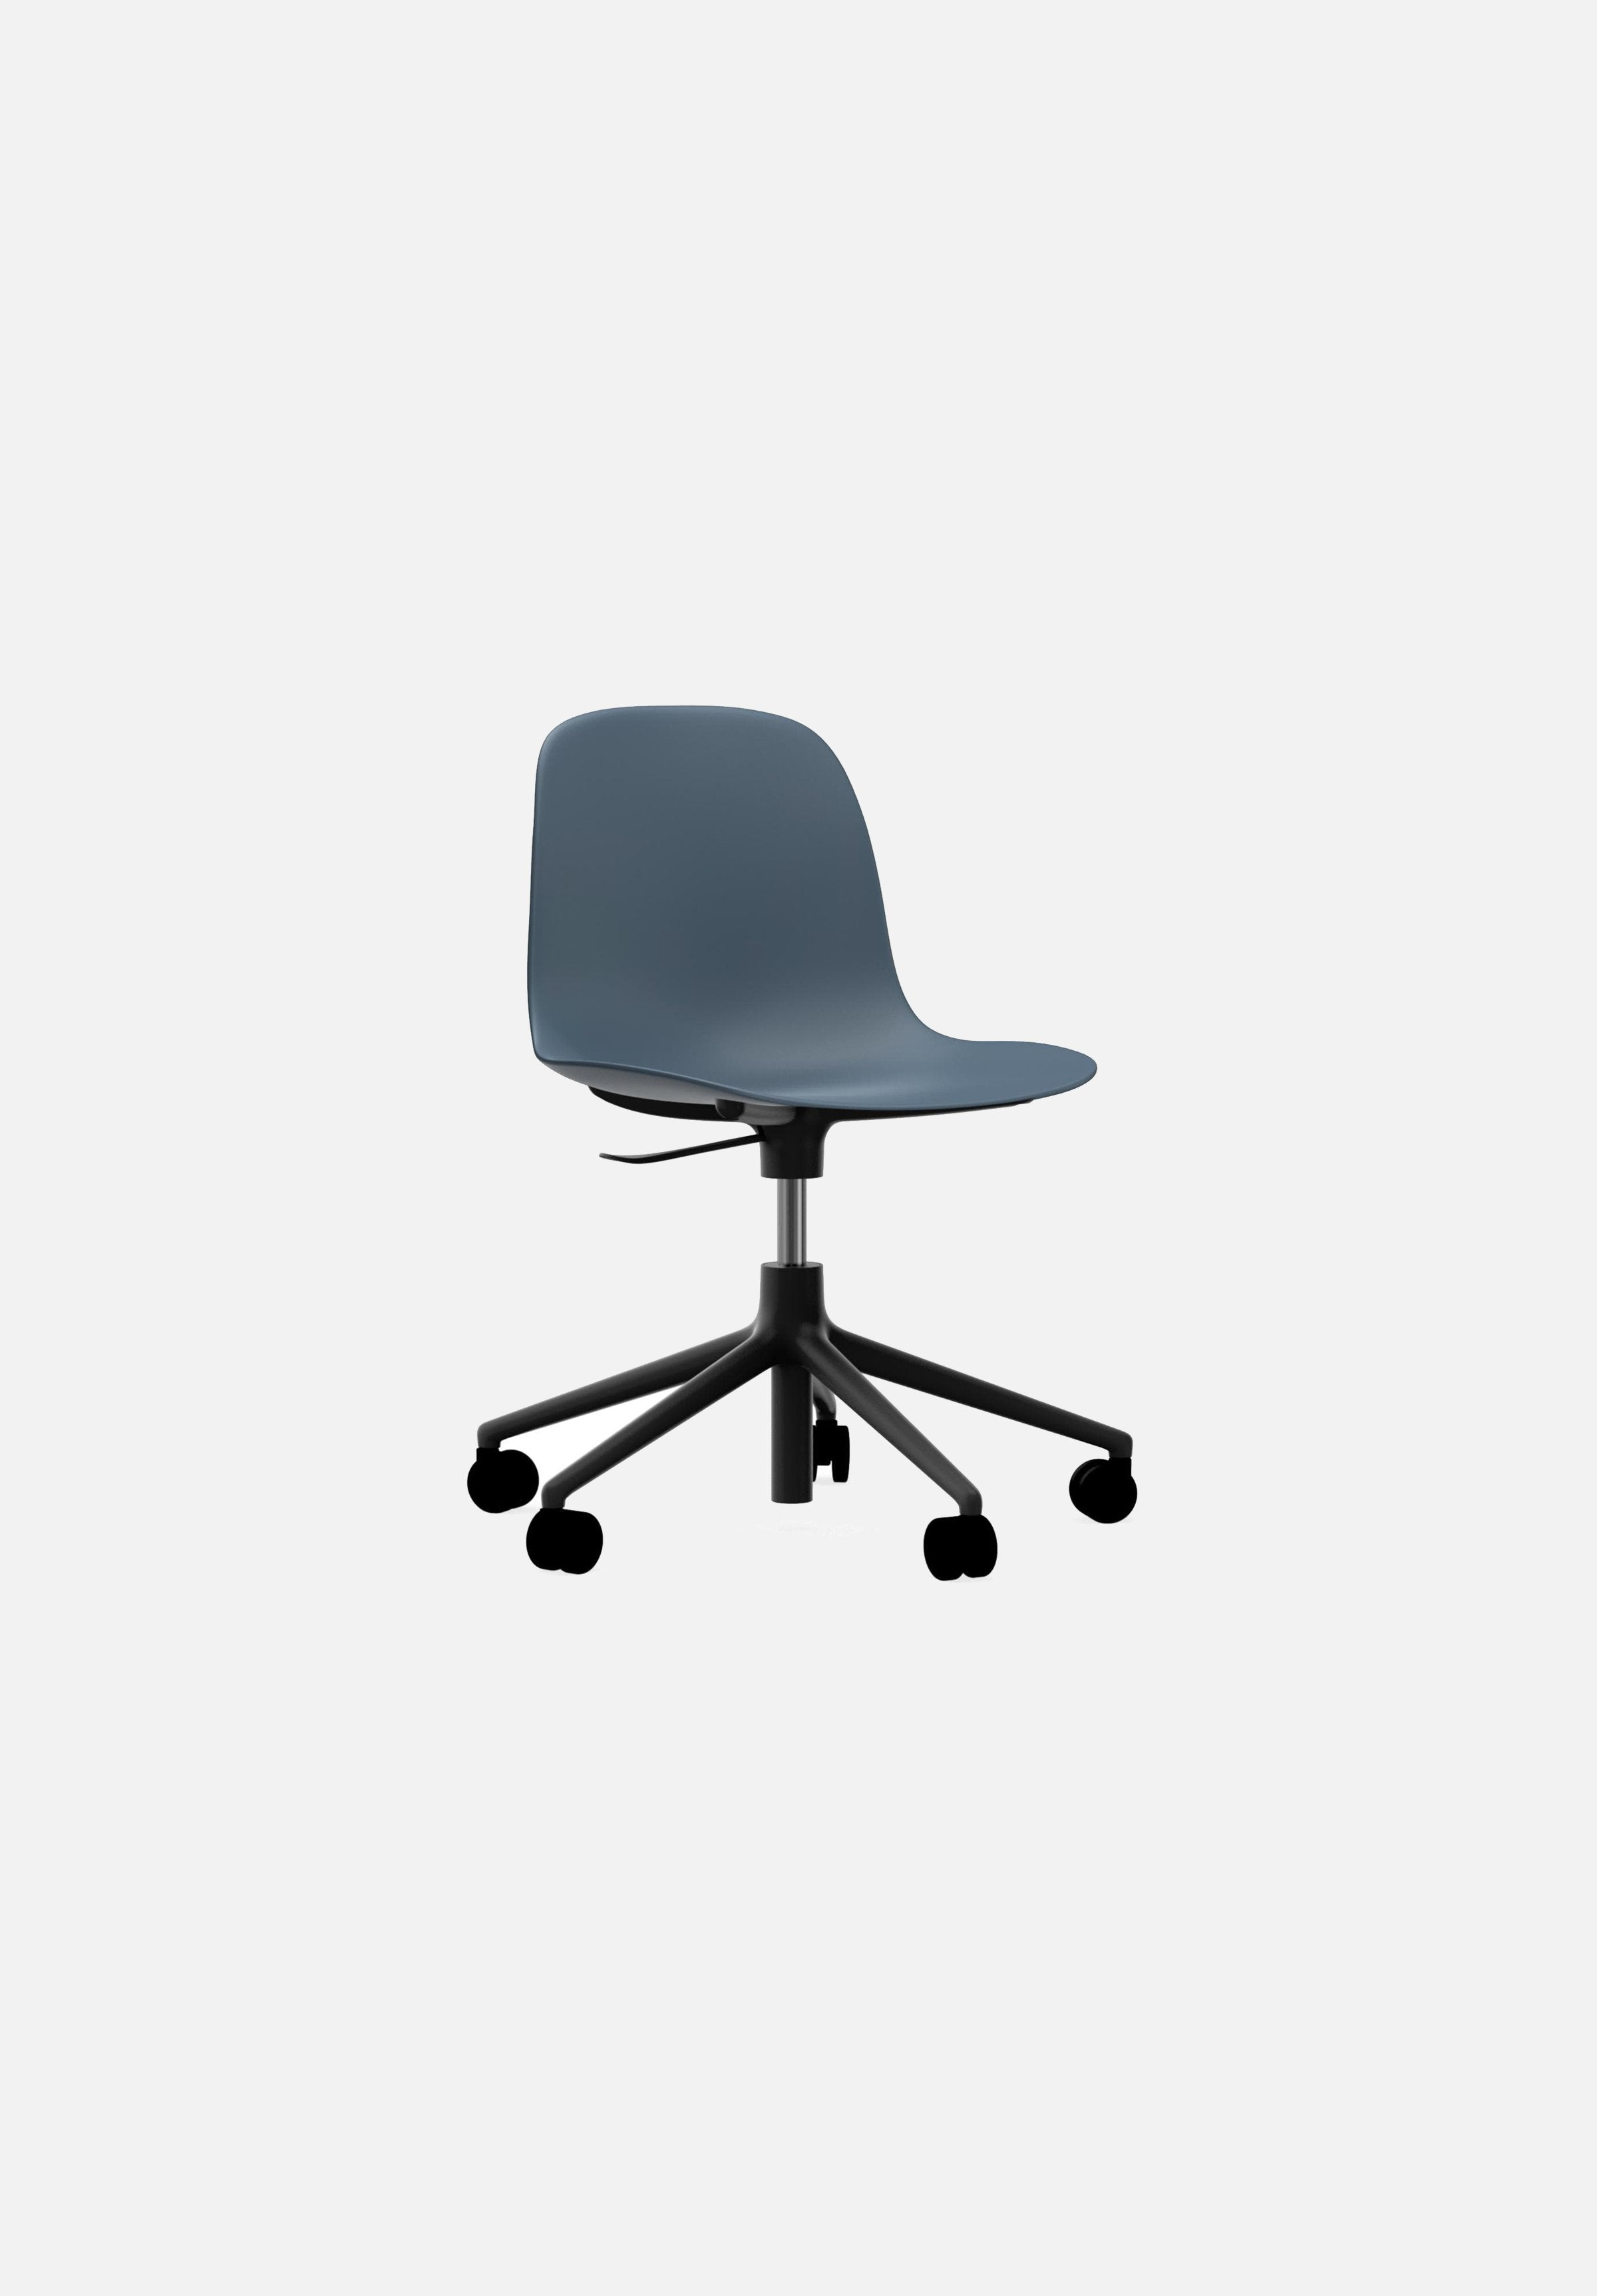 Form Chair — Swivel Gaslift-Simon Legald-Normann Copenhagen-Blue-Black Aluminum-Average-canada-design-store-danish-denmark-furniture-interior